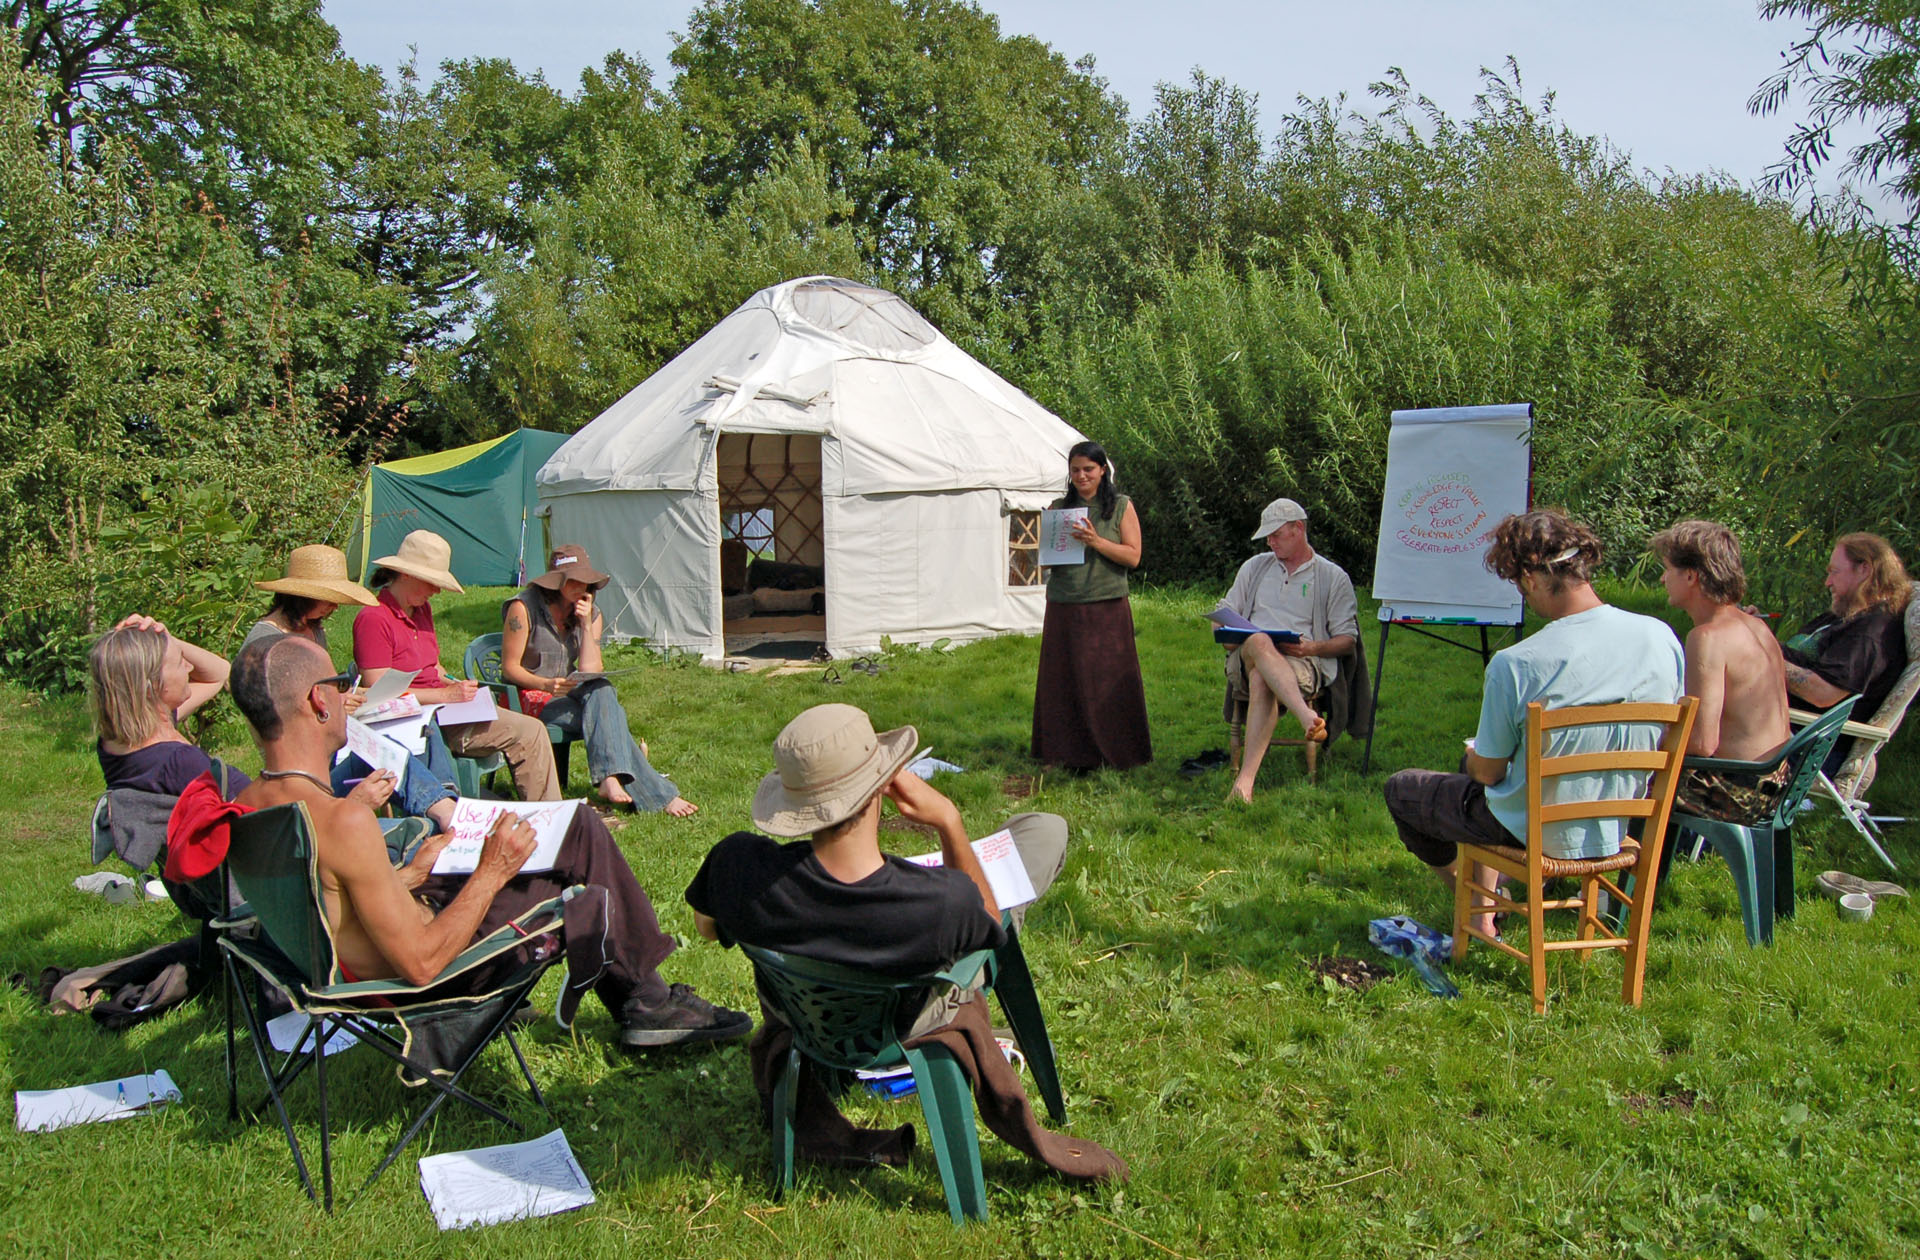 Outside session wirth yurt - summer